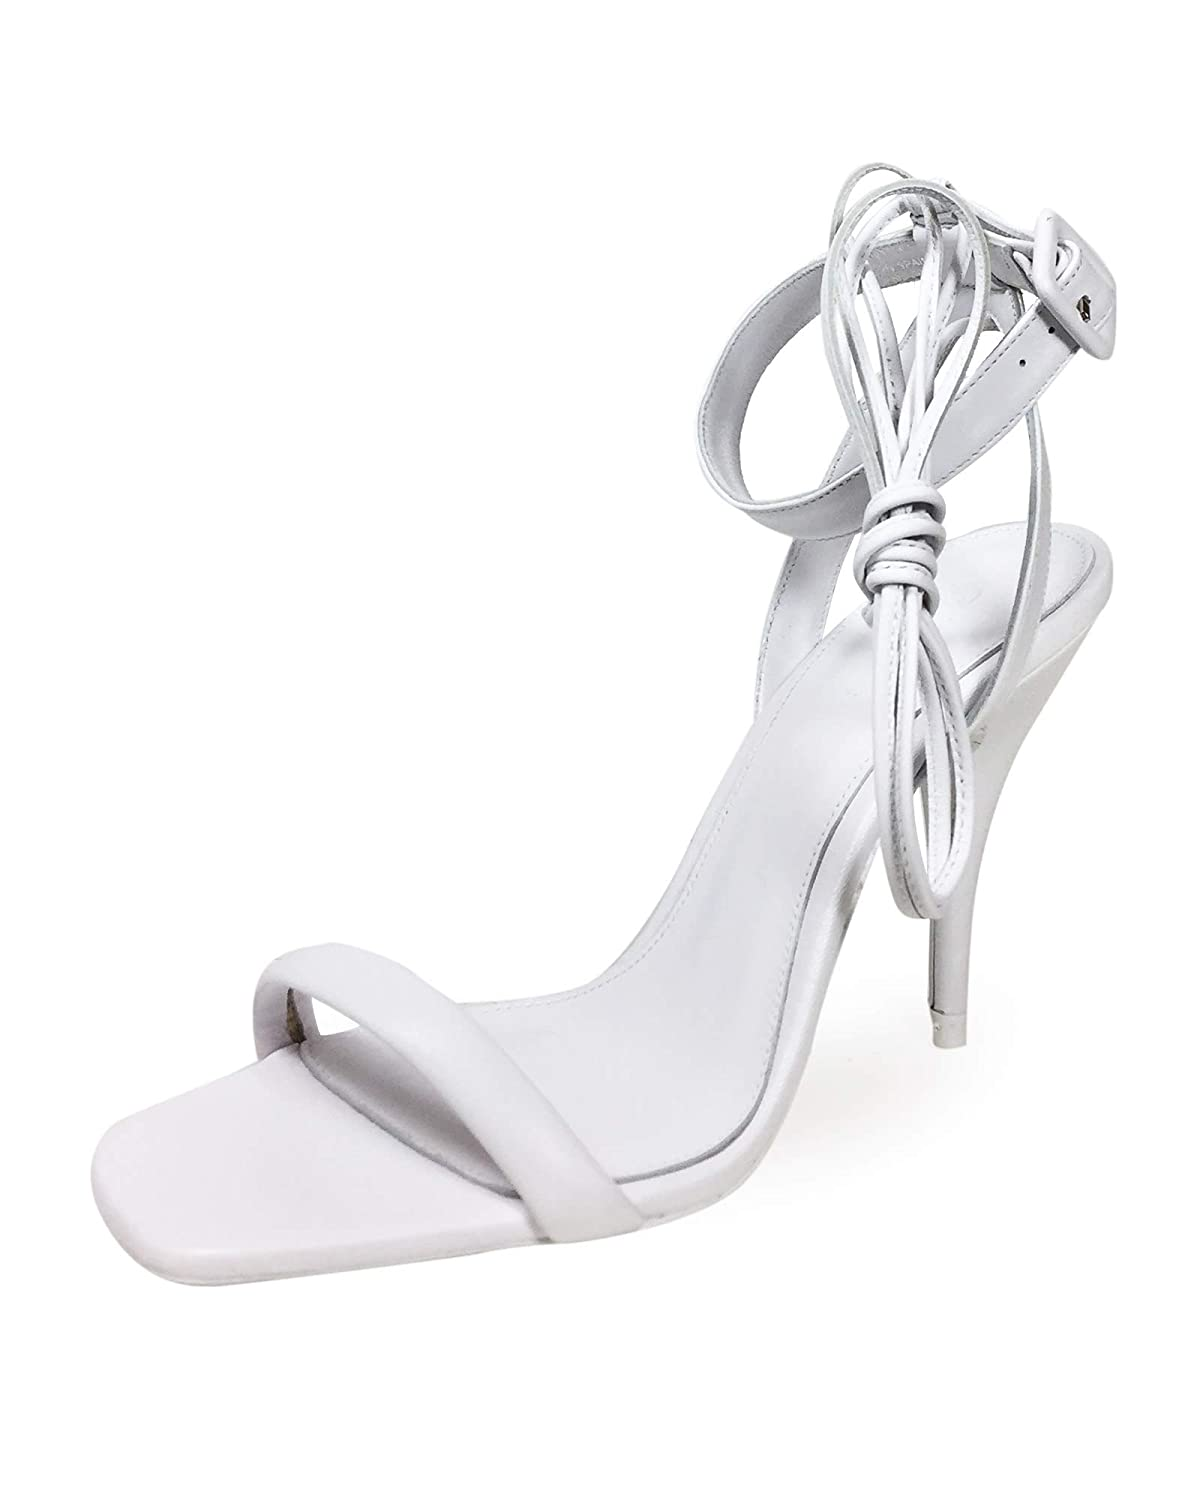 62d1efdf8a Amazon.com: Zara Women Leather high heel sandals 1375/001: Clothing